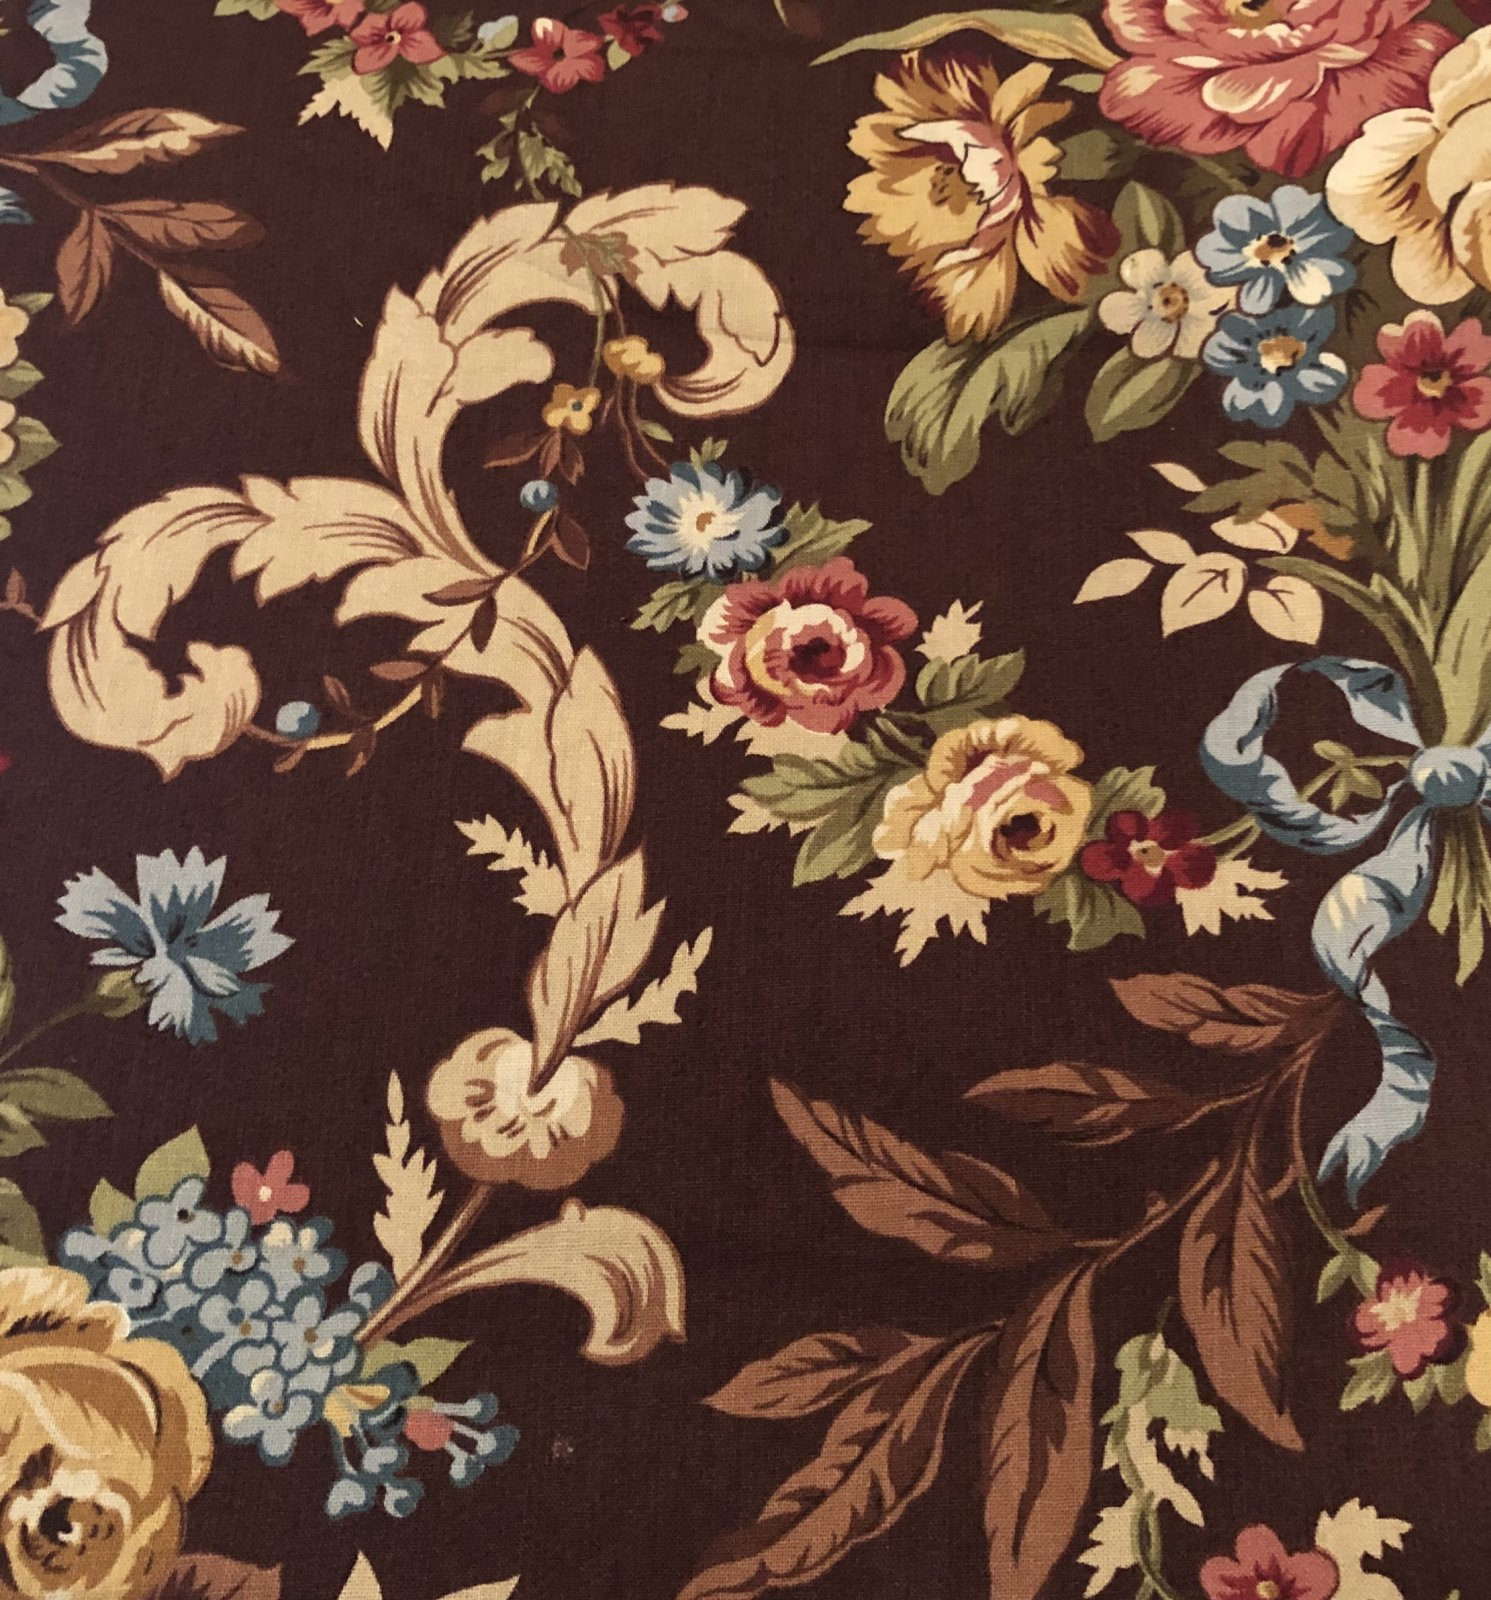 Brown with Floral Design - 2 1/2 yds